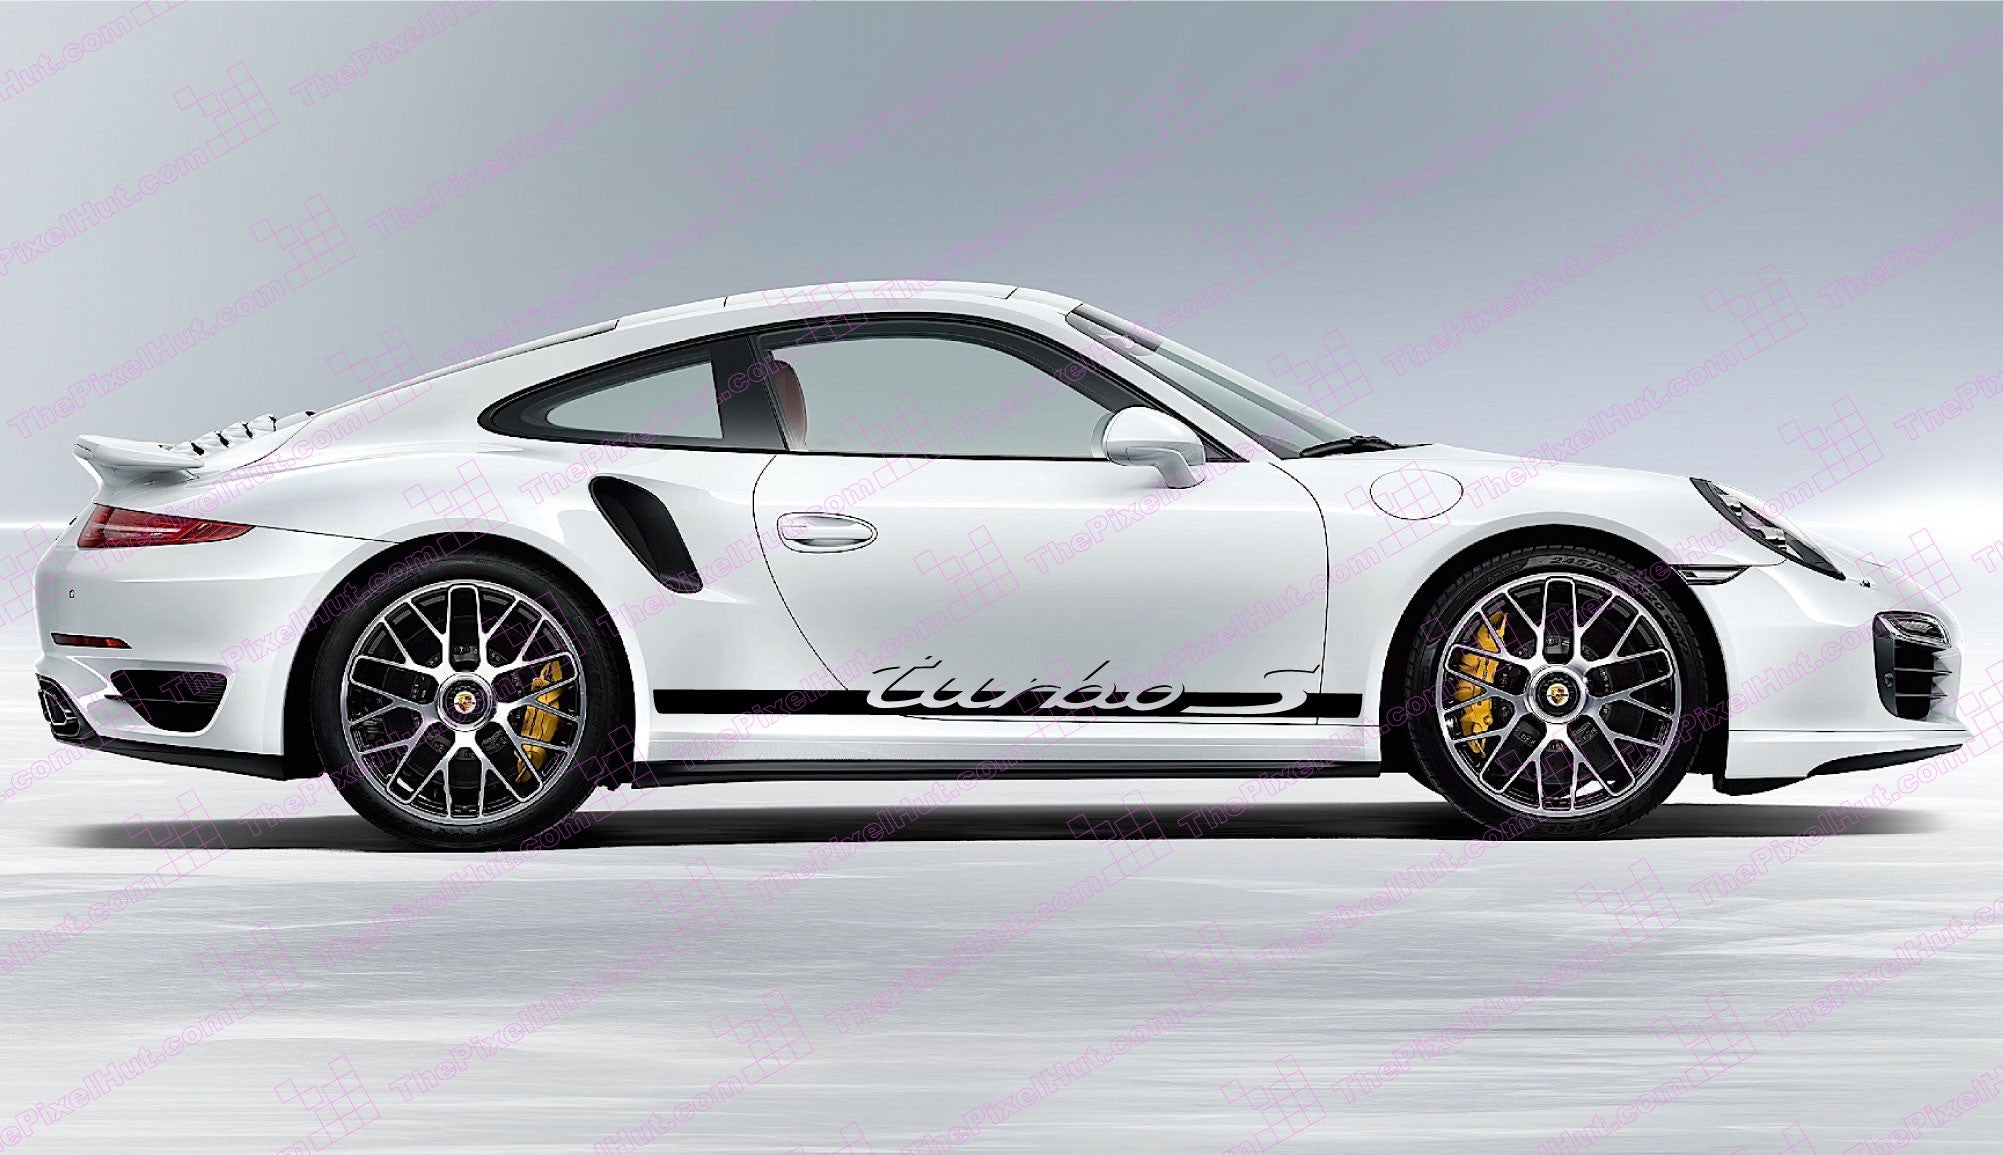 Porsche 911 Carrera Turbo S Retro Door Decals The Pixel Hut